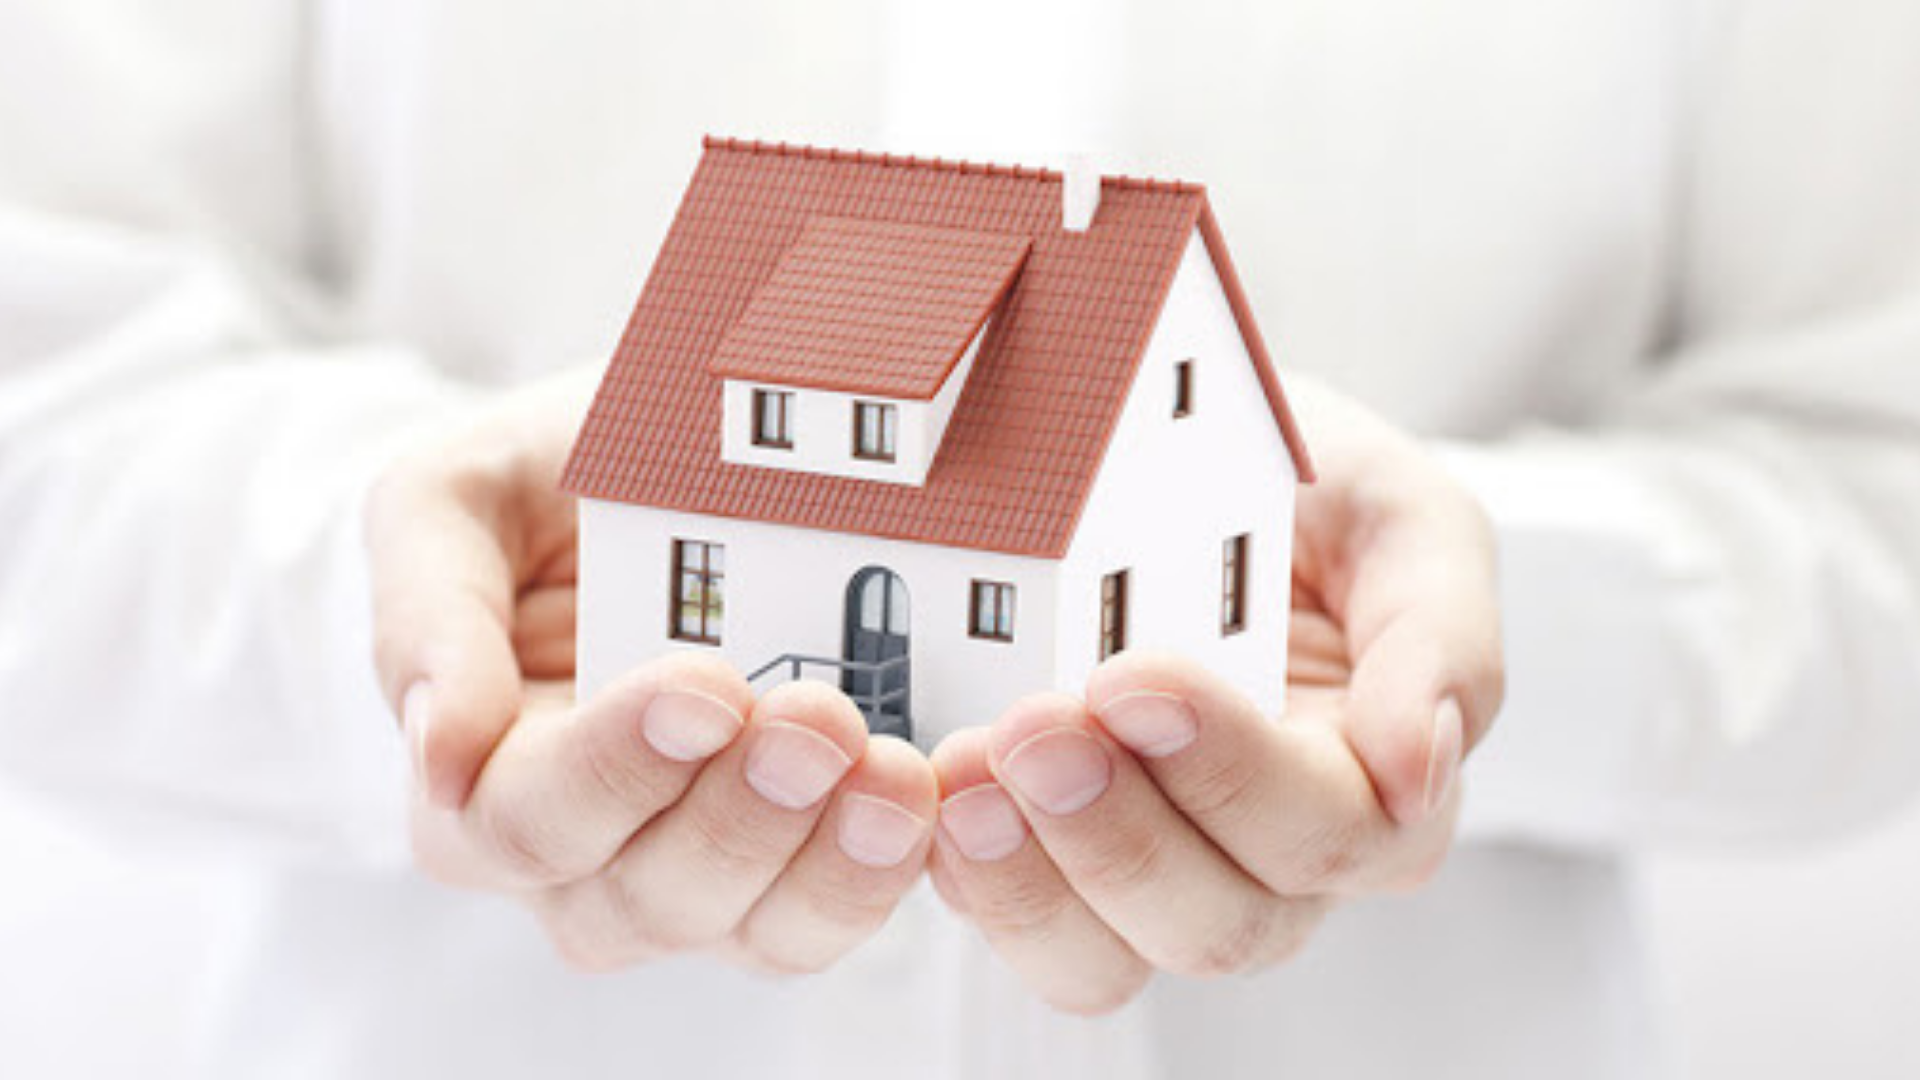 6 TIPS TO SAVE MONEY ON YOUR HOME LOAN